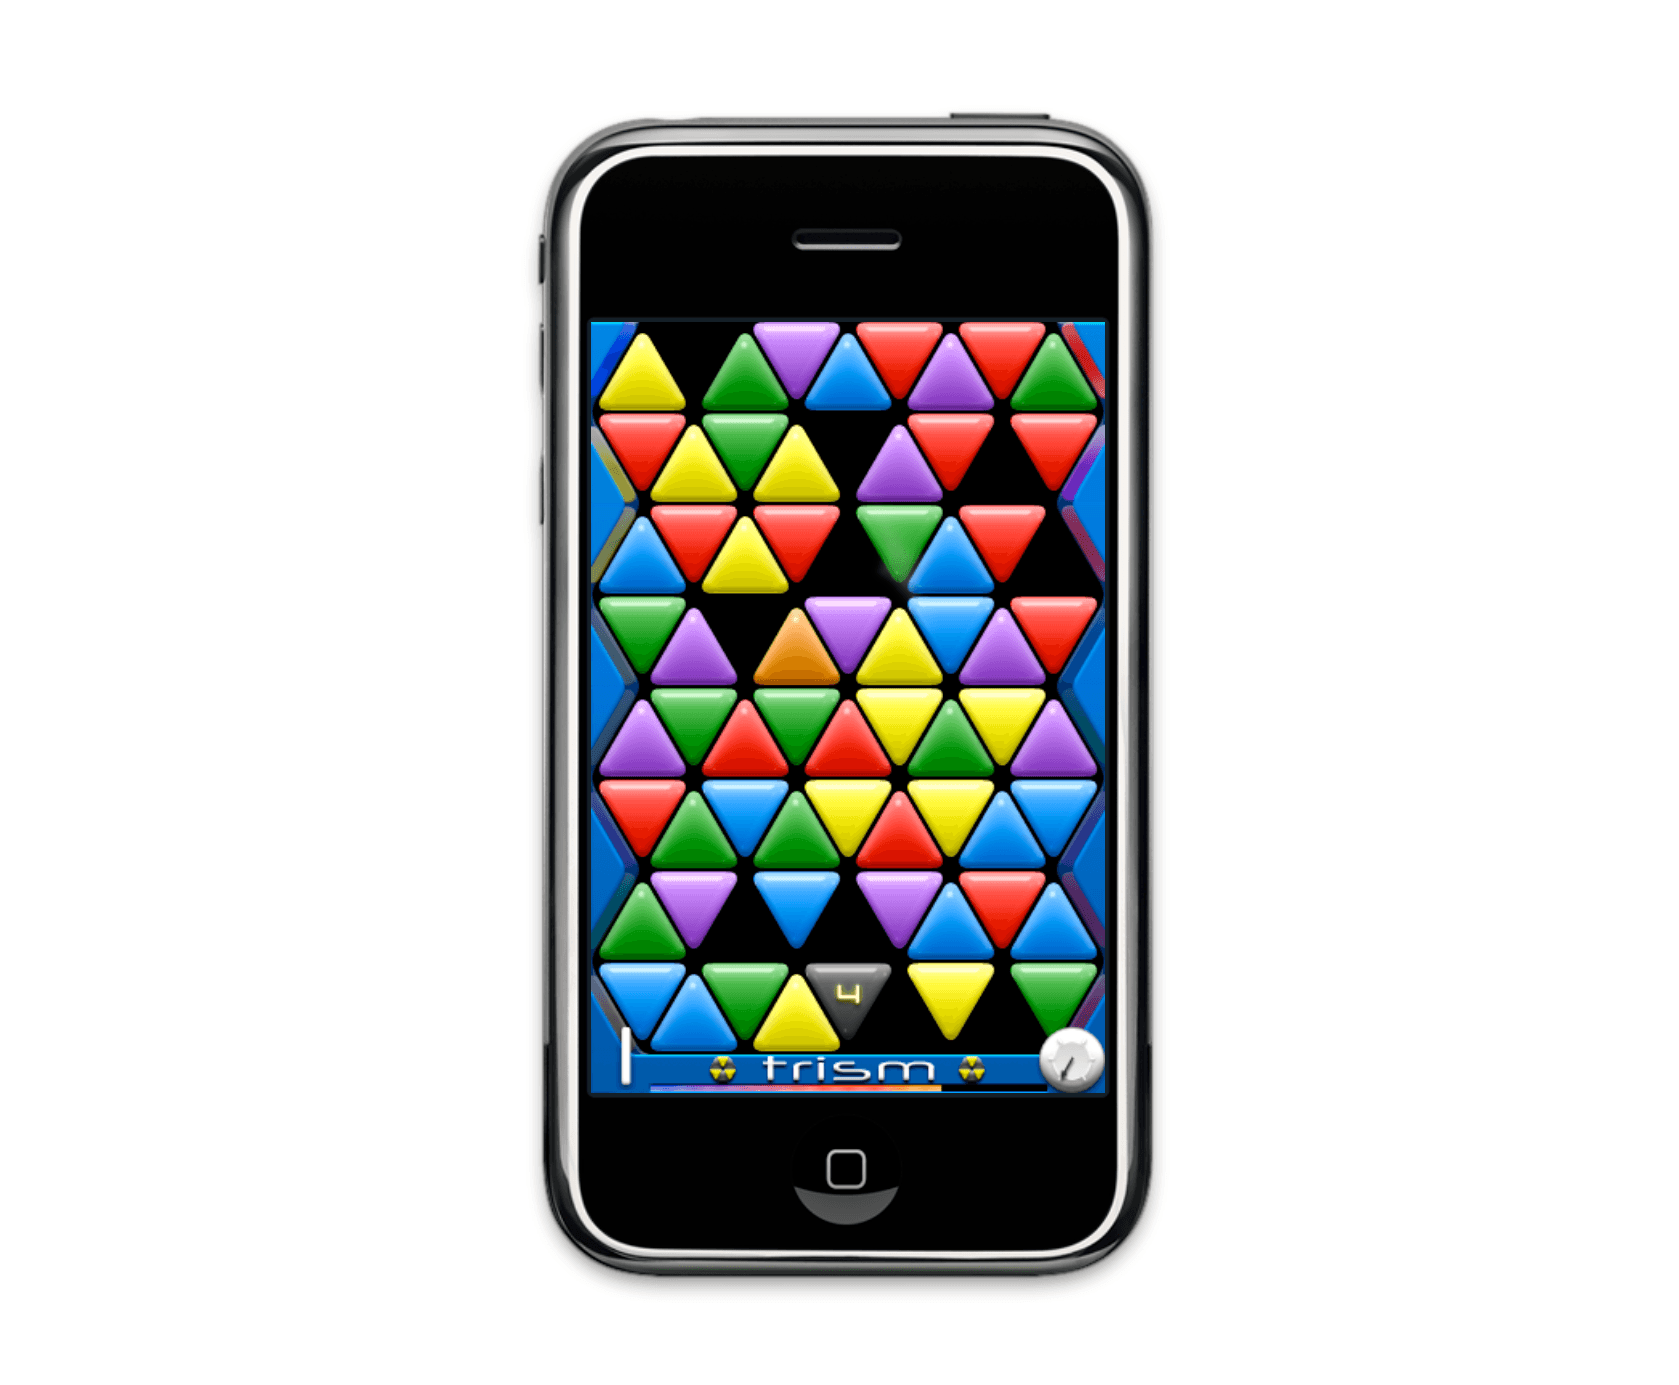 Trism for iPhone